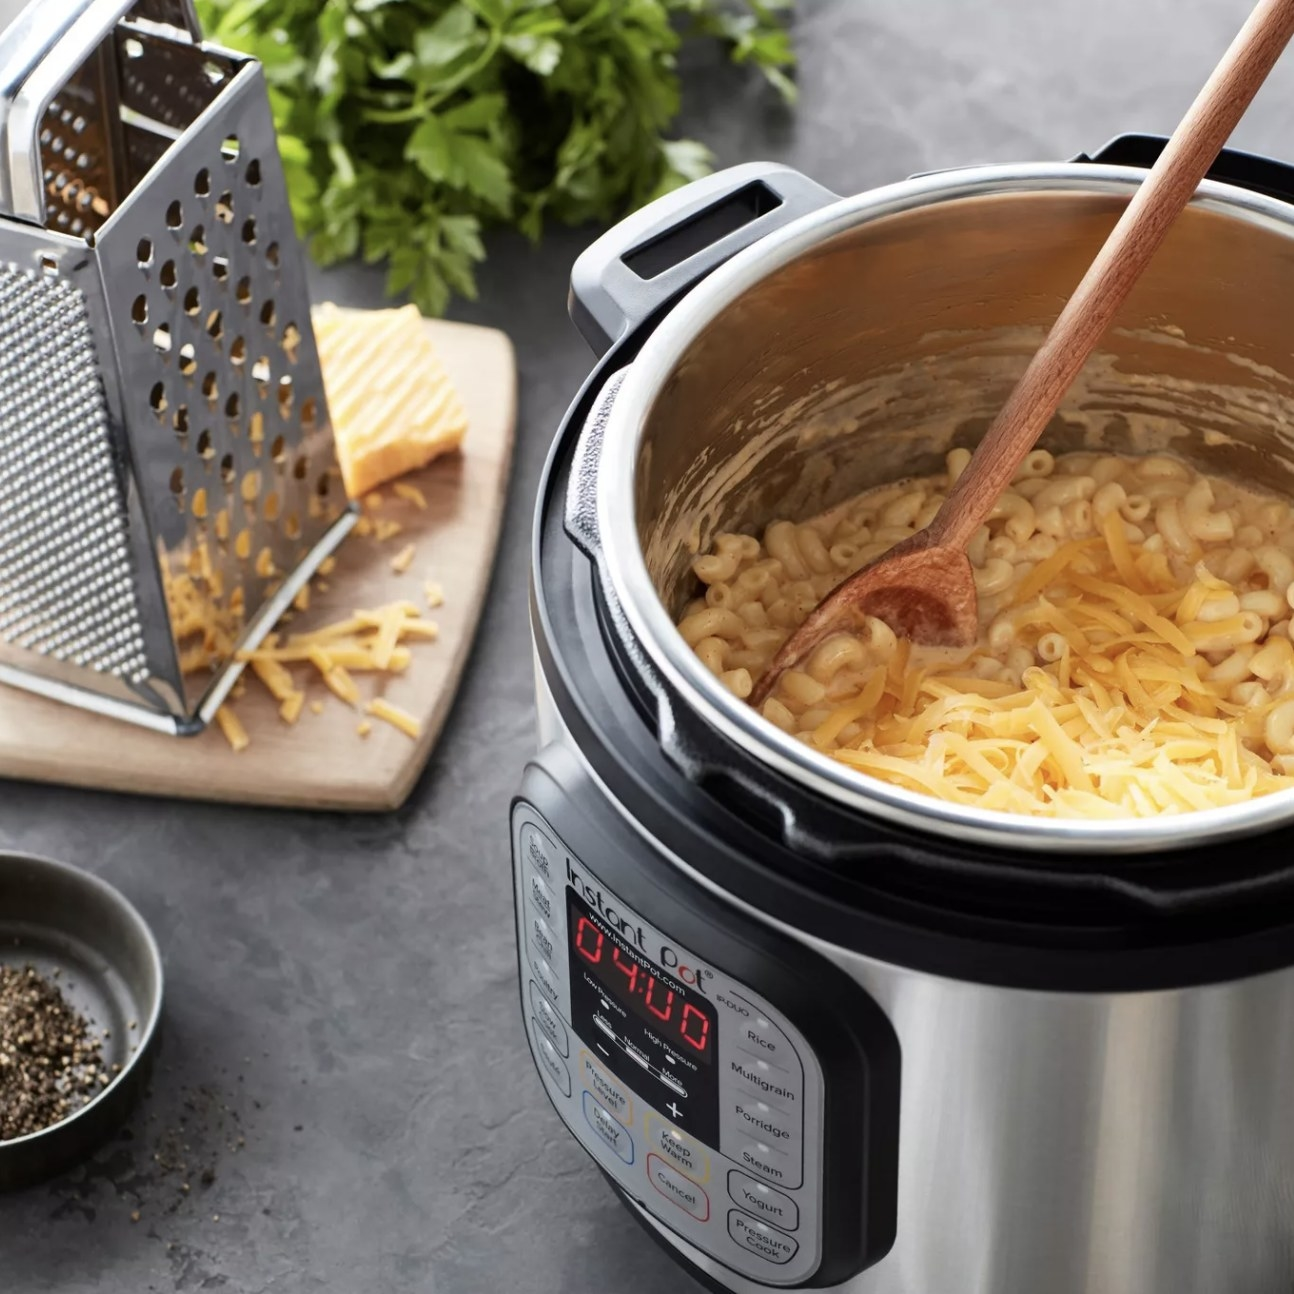 The instant pot with the lid off showing mac and cheese cooked inside